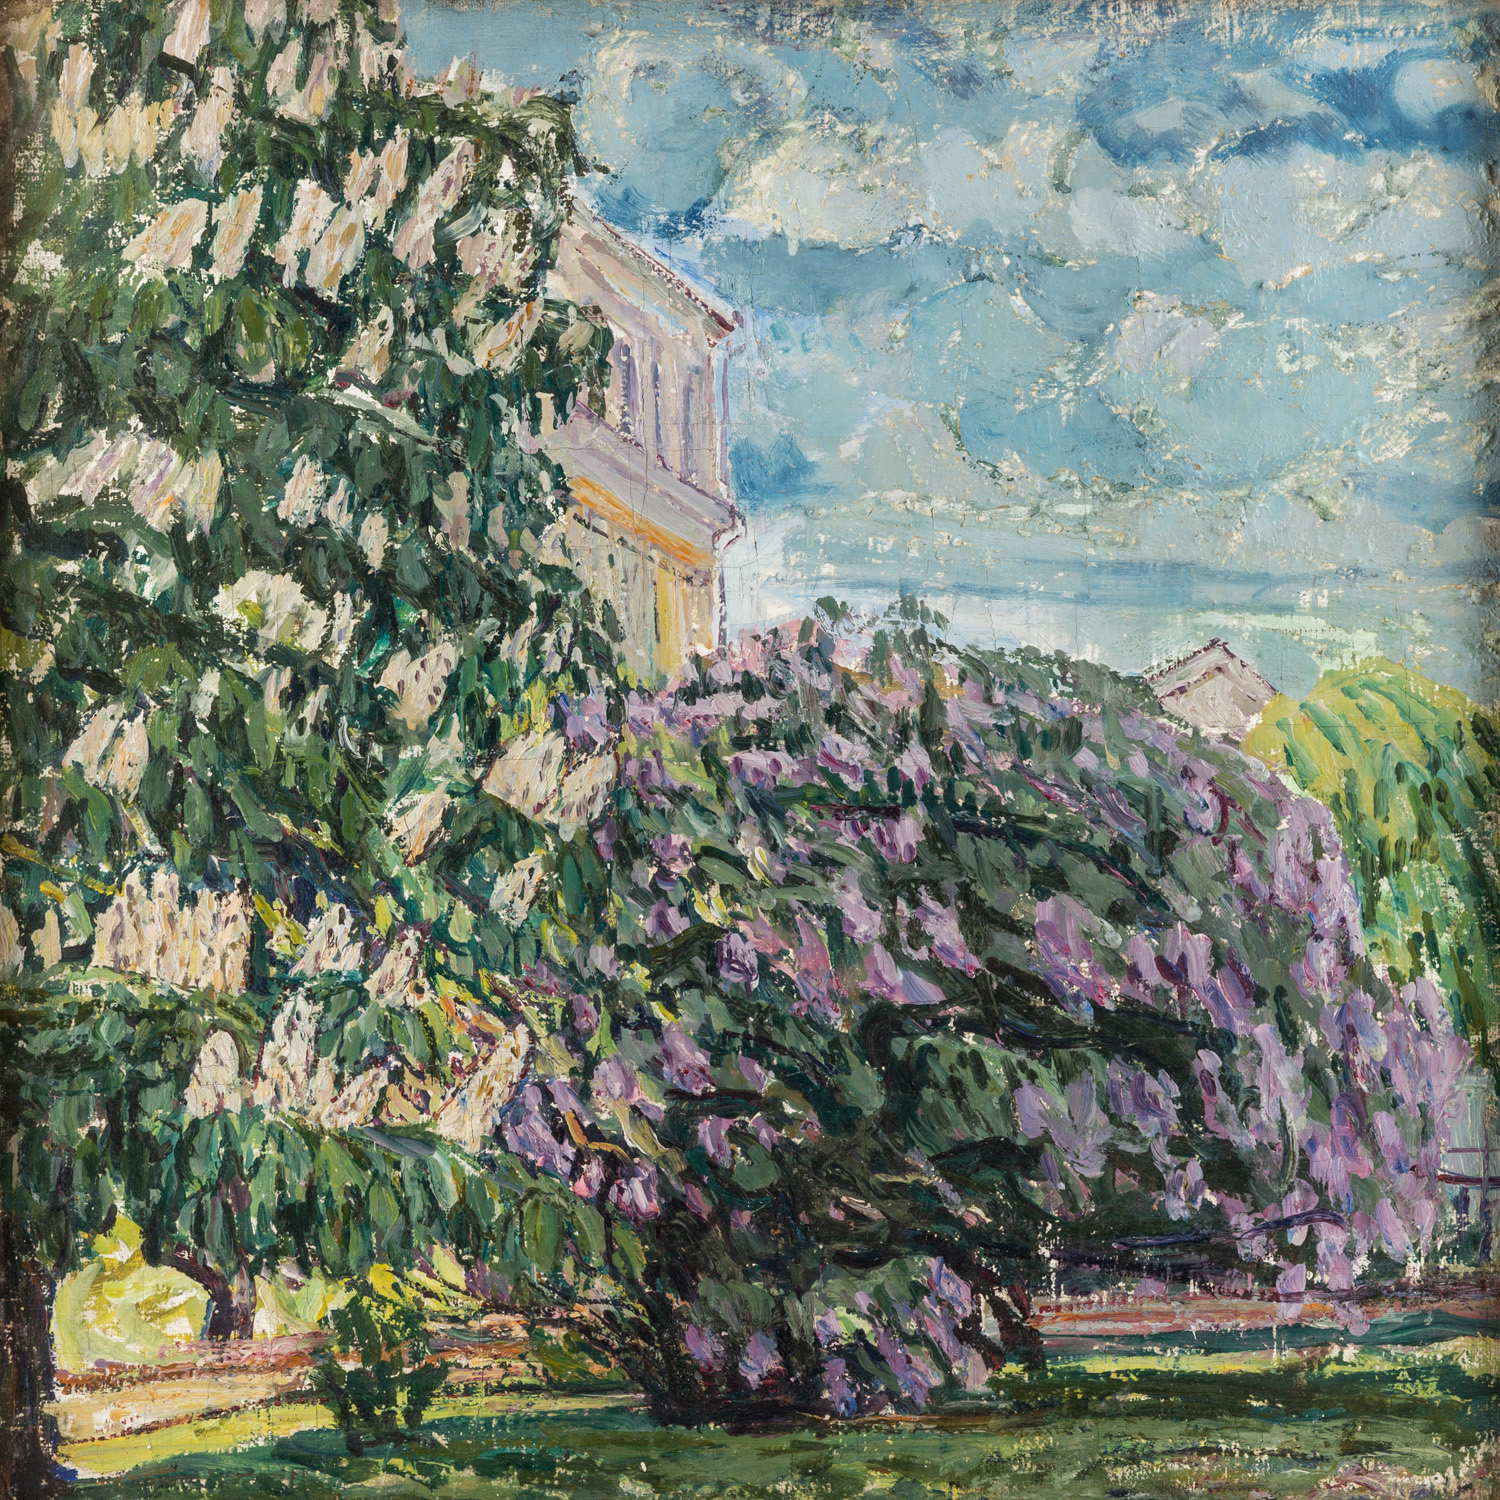 A DOUBLE-SIDED LANDSCAPE PAINTING BY ABRAHAM MANIEVICH (RUSSIAN 1883-1942) - Image 3 of 5